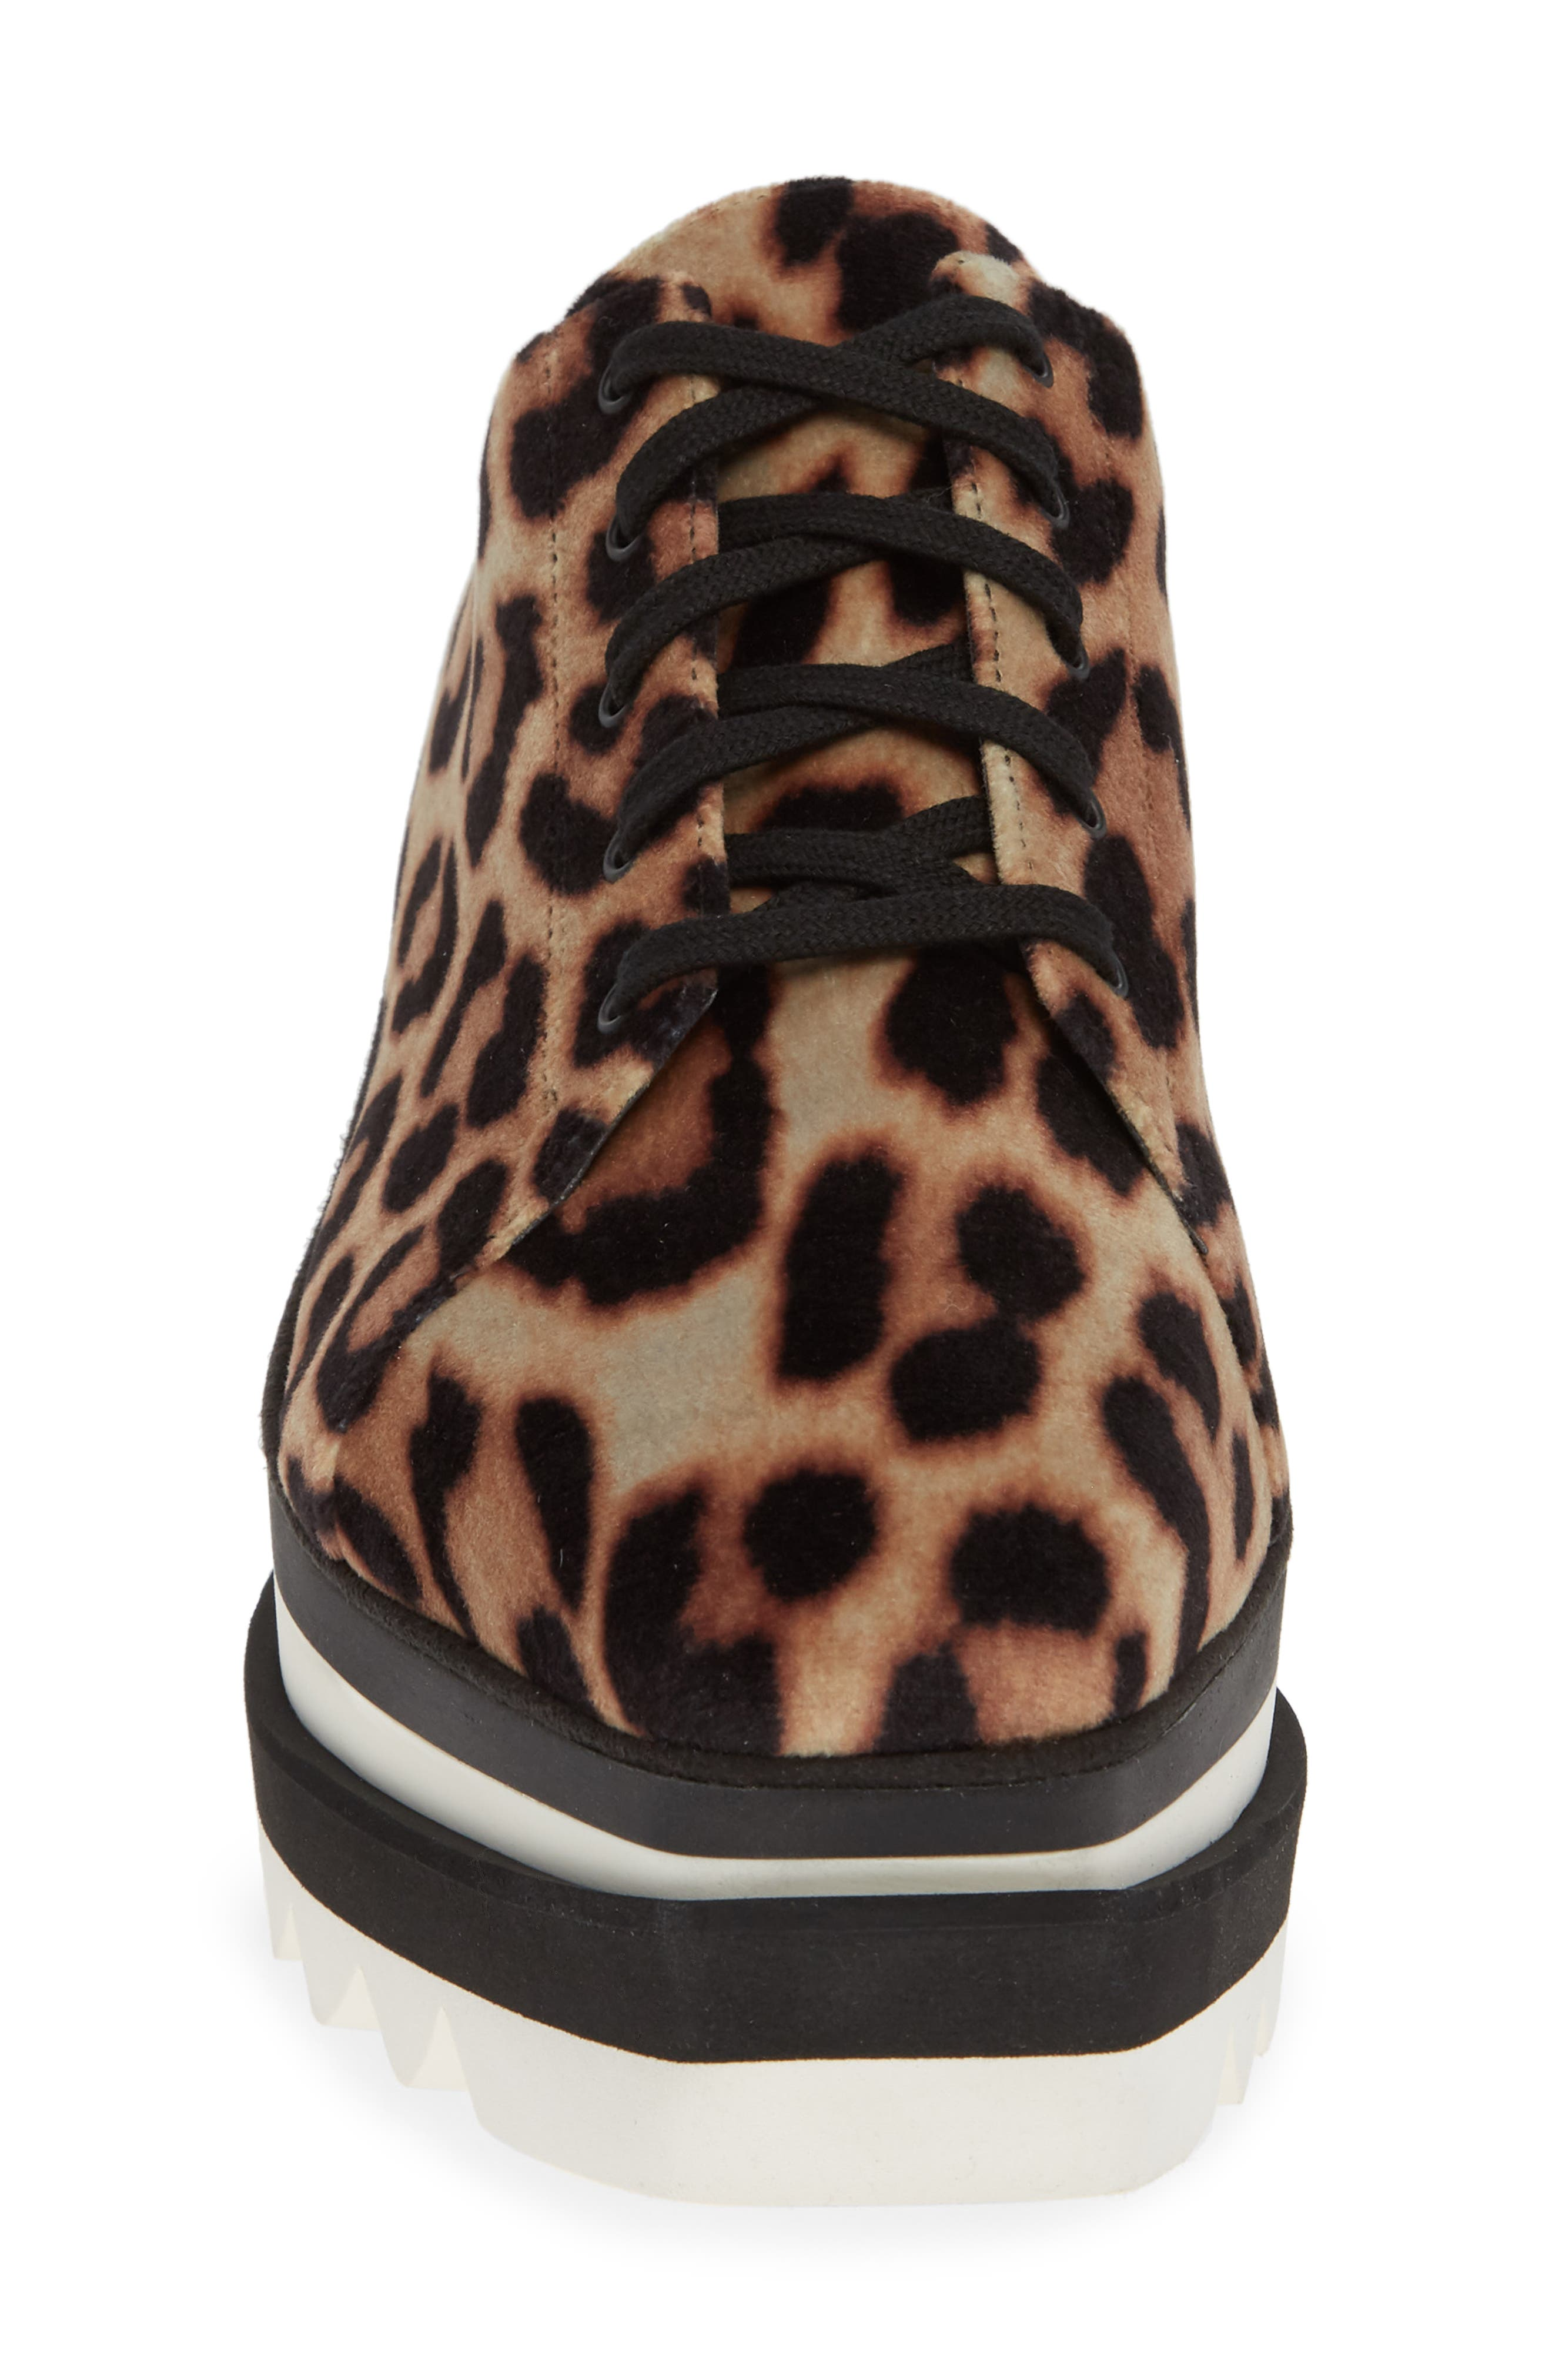 Sneak-Elyse Platform Mule,                             Alternate thumbnail 4, color,                             LEOPARD PRINT